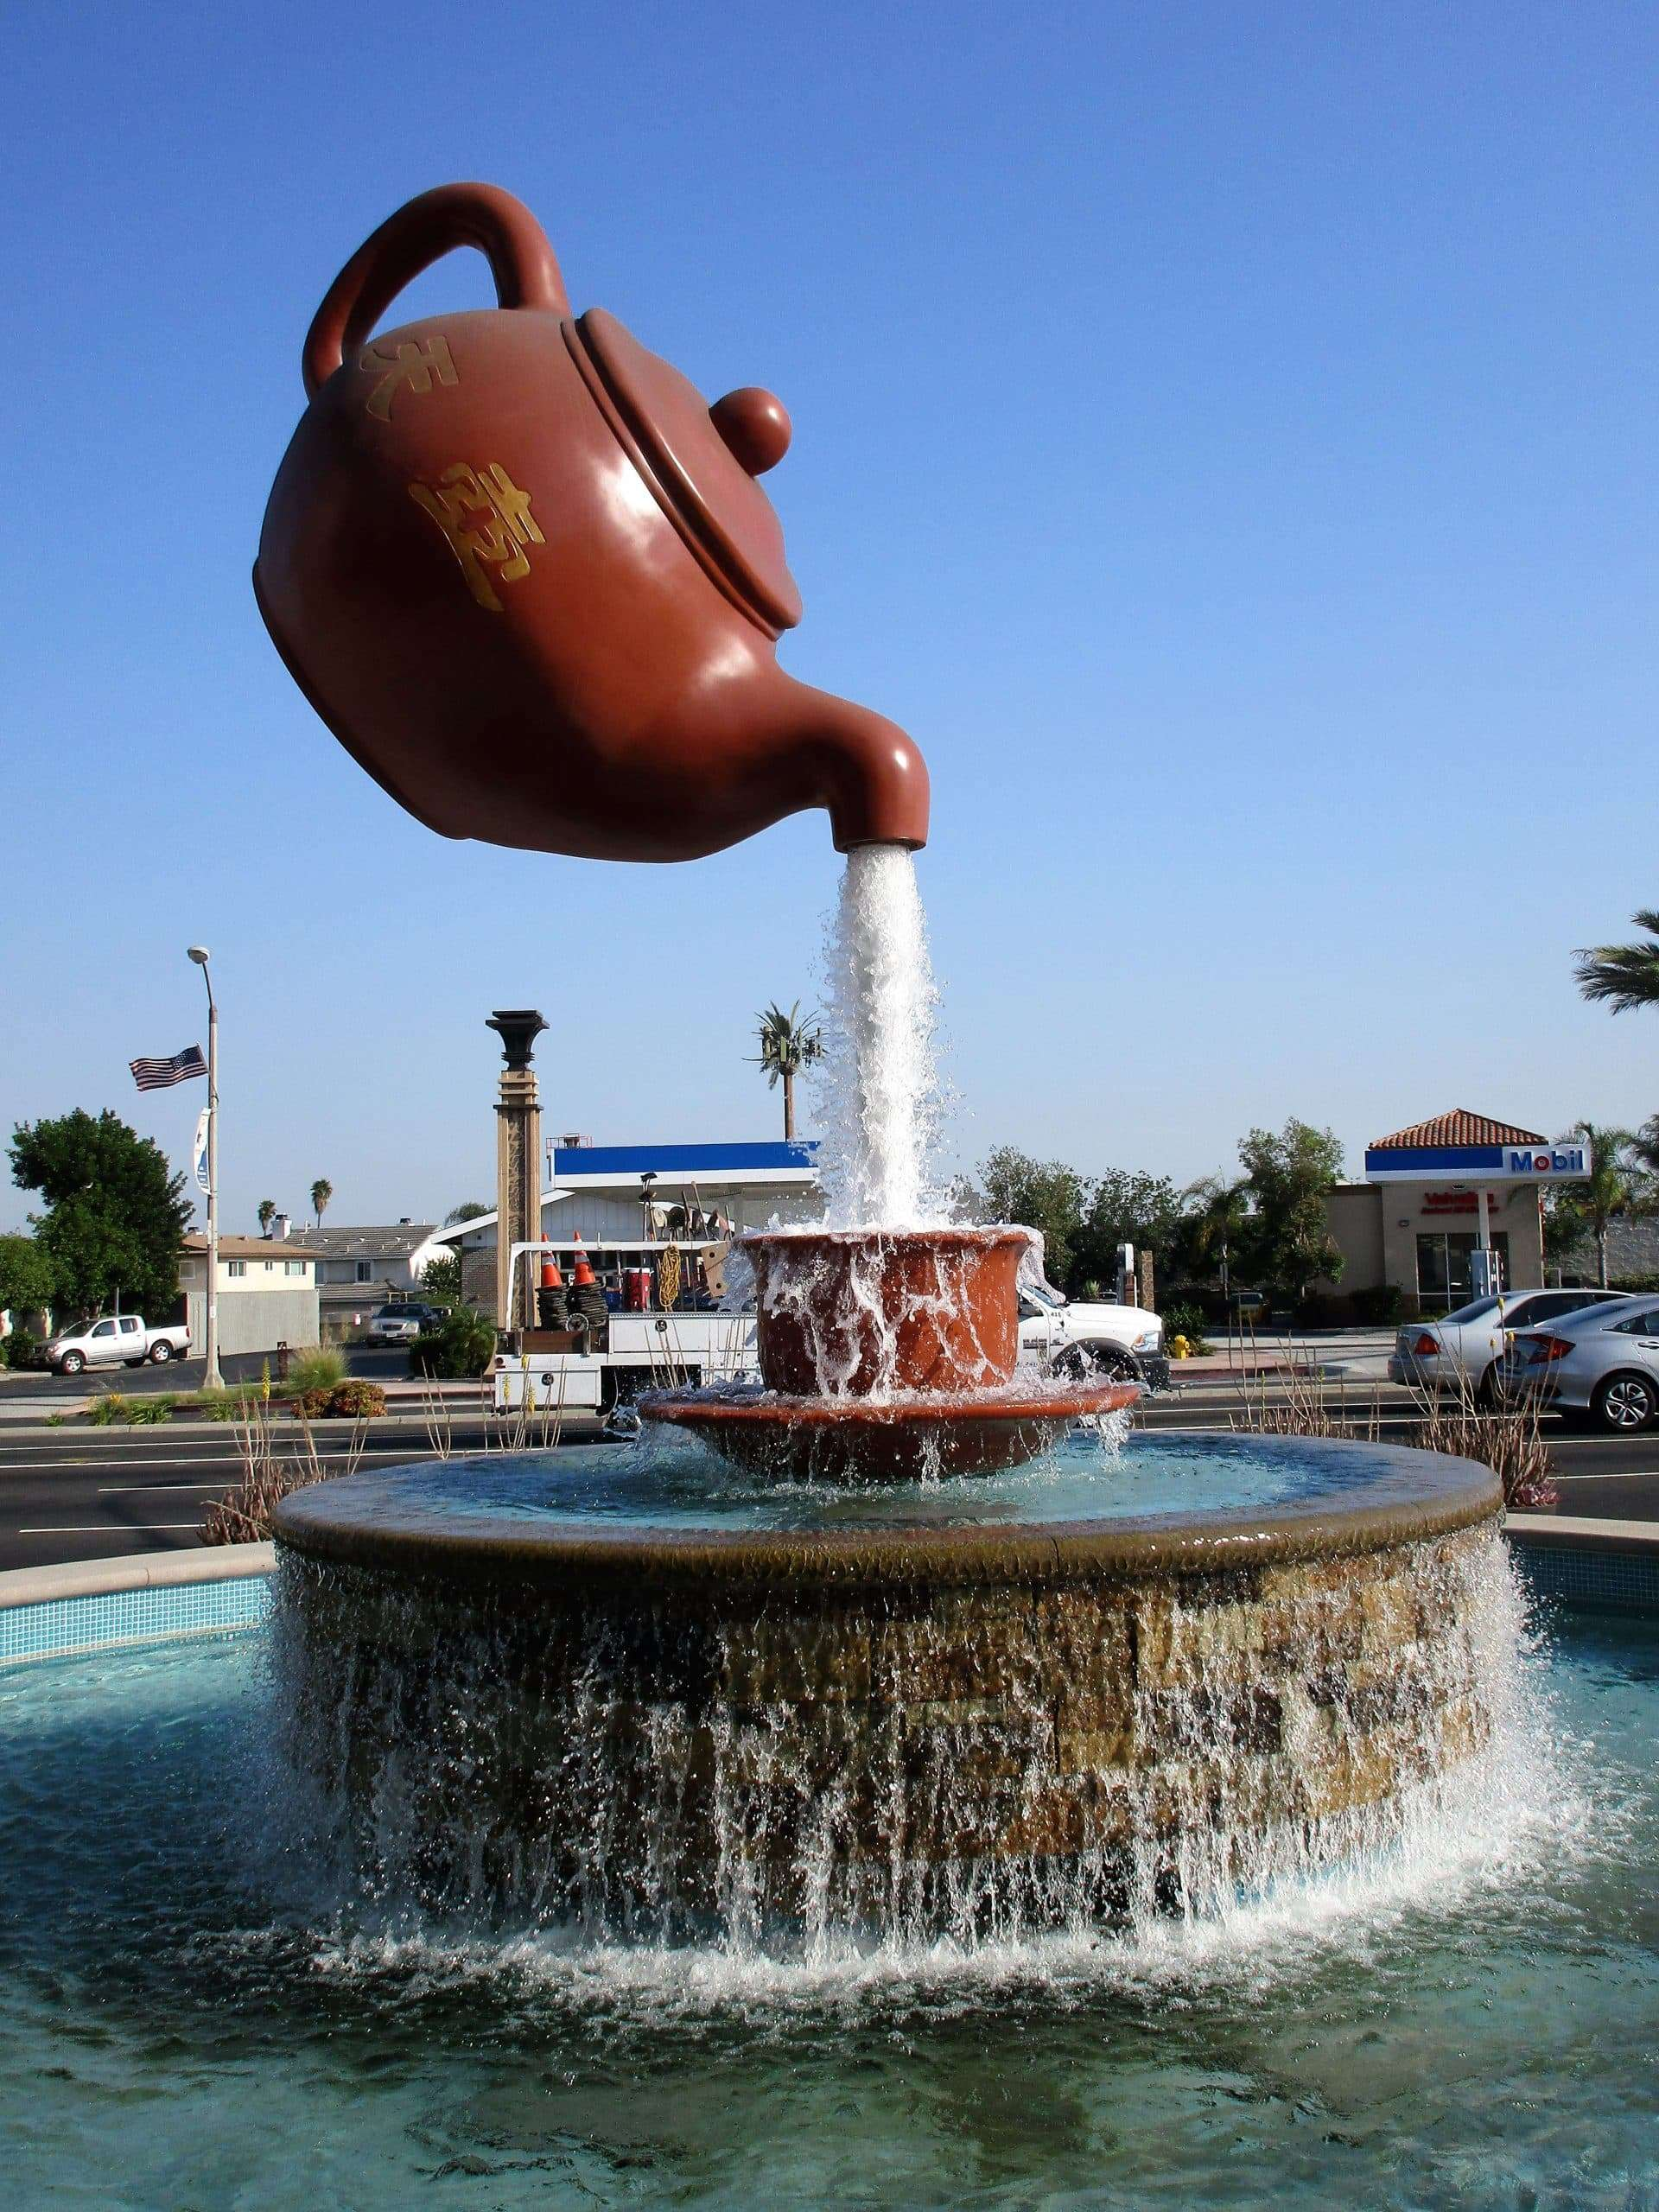 Tea Along U.S. Route 66 - Photo of the teapot hanging in the air.